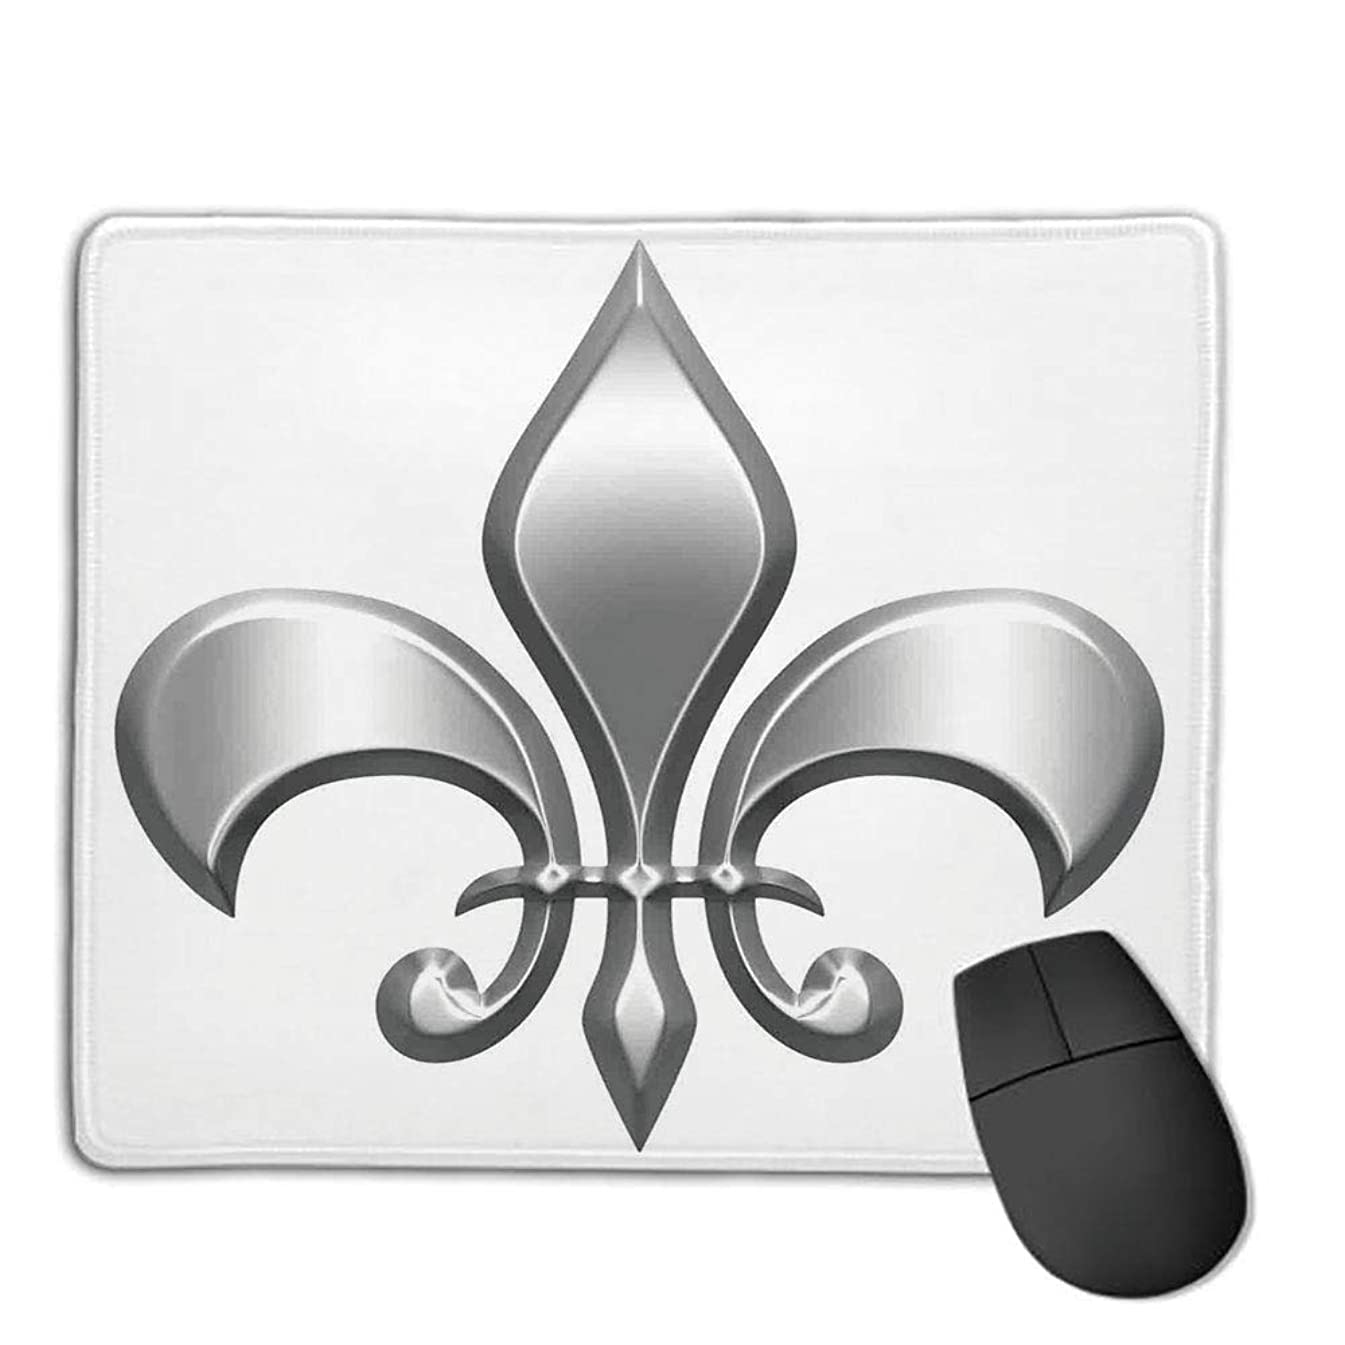 Mouse Pad,Stitched Edges, Waterproof, Ultra Thick 3mm, SilkyFleur De Lis Decor,Lily Flower Symbol Nobility of Knights in Medieval Time European Iris Icon Design,White Silver,Applies to Games,Home, s